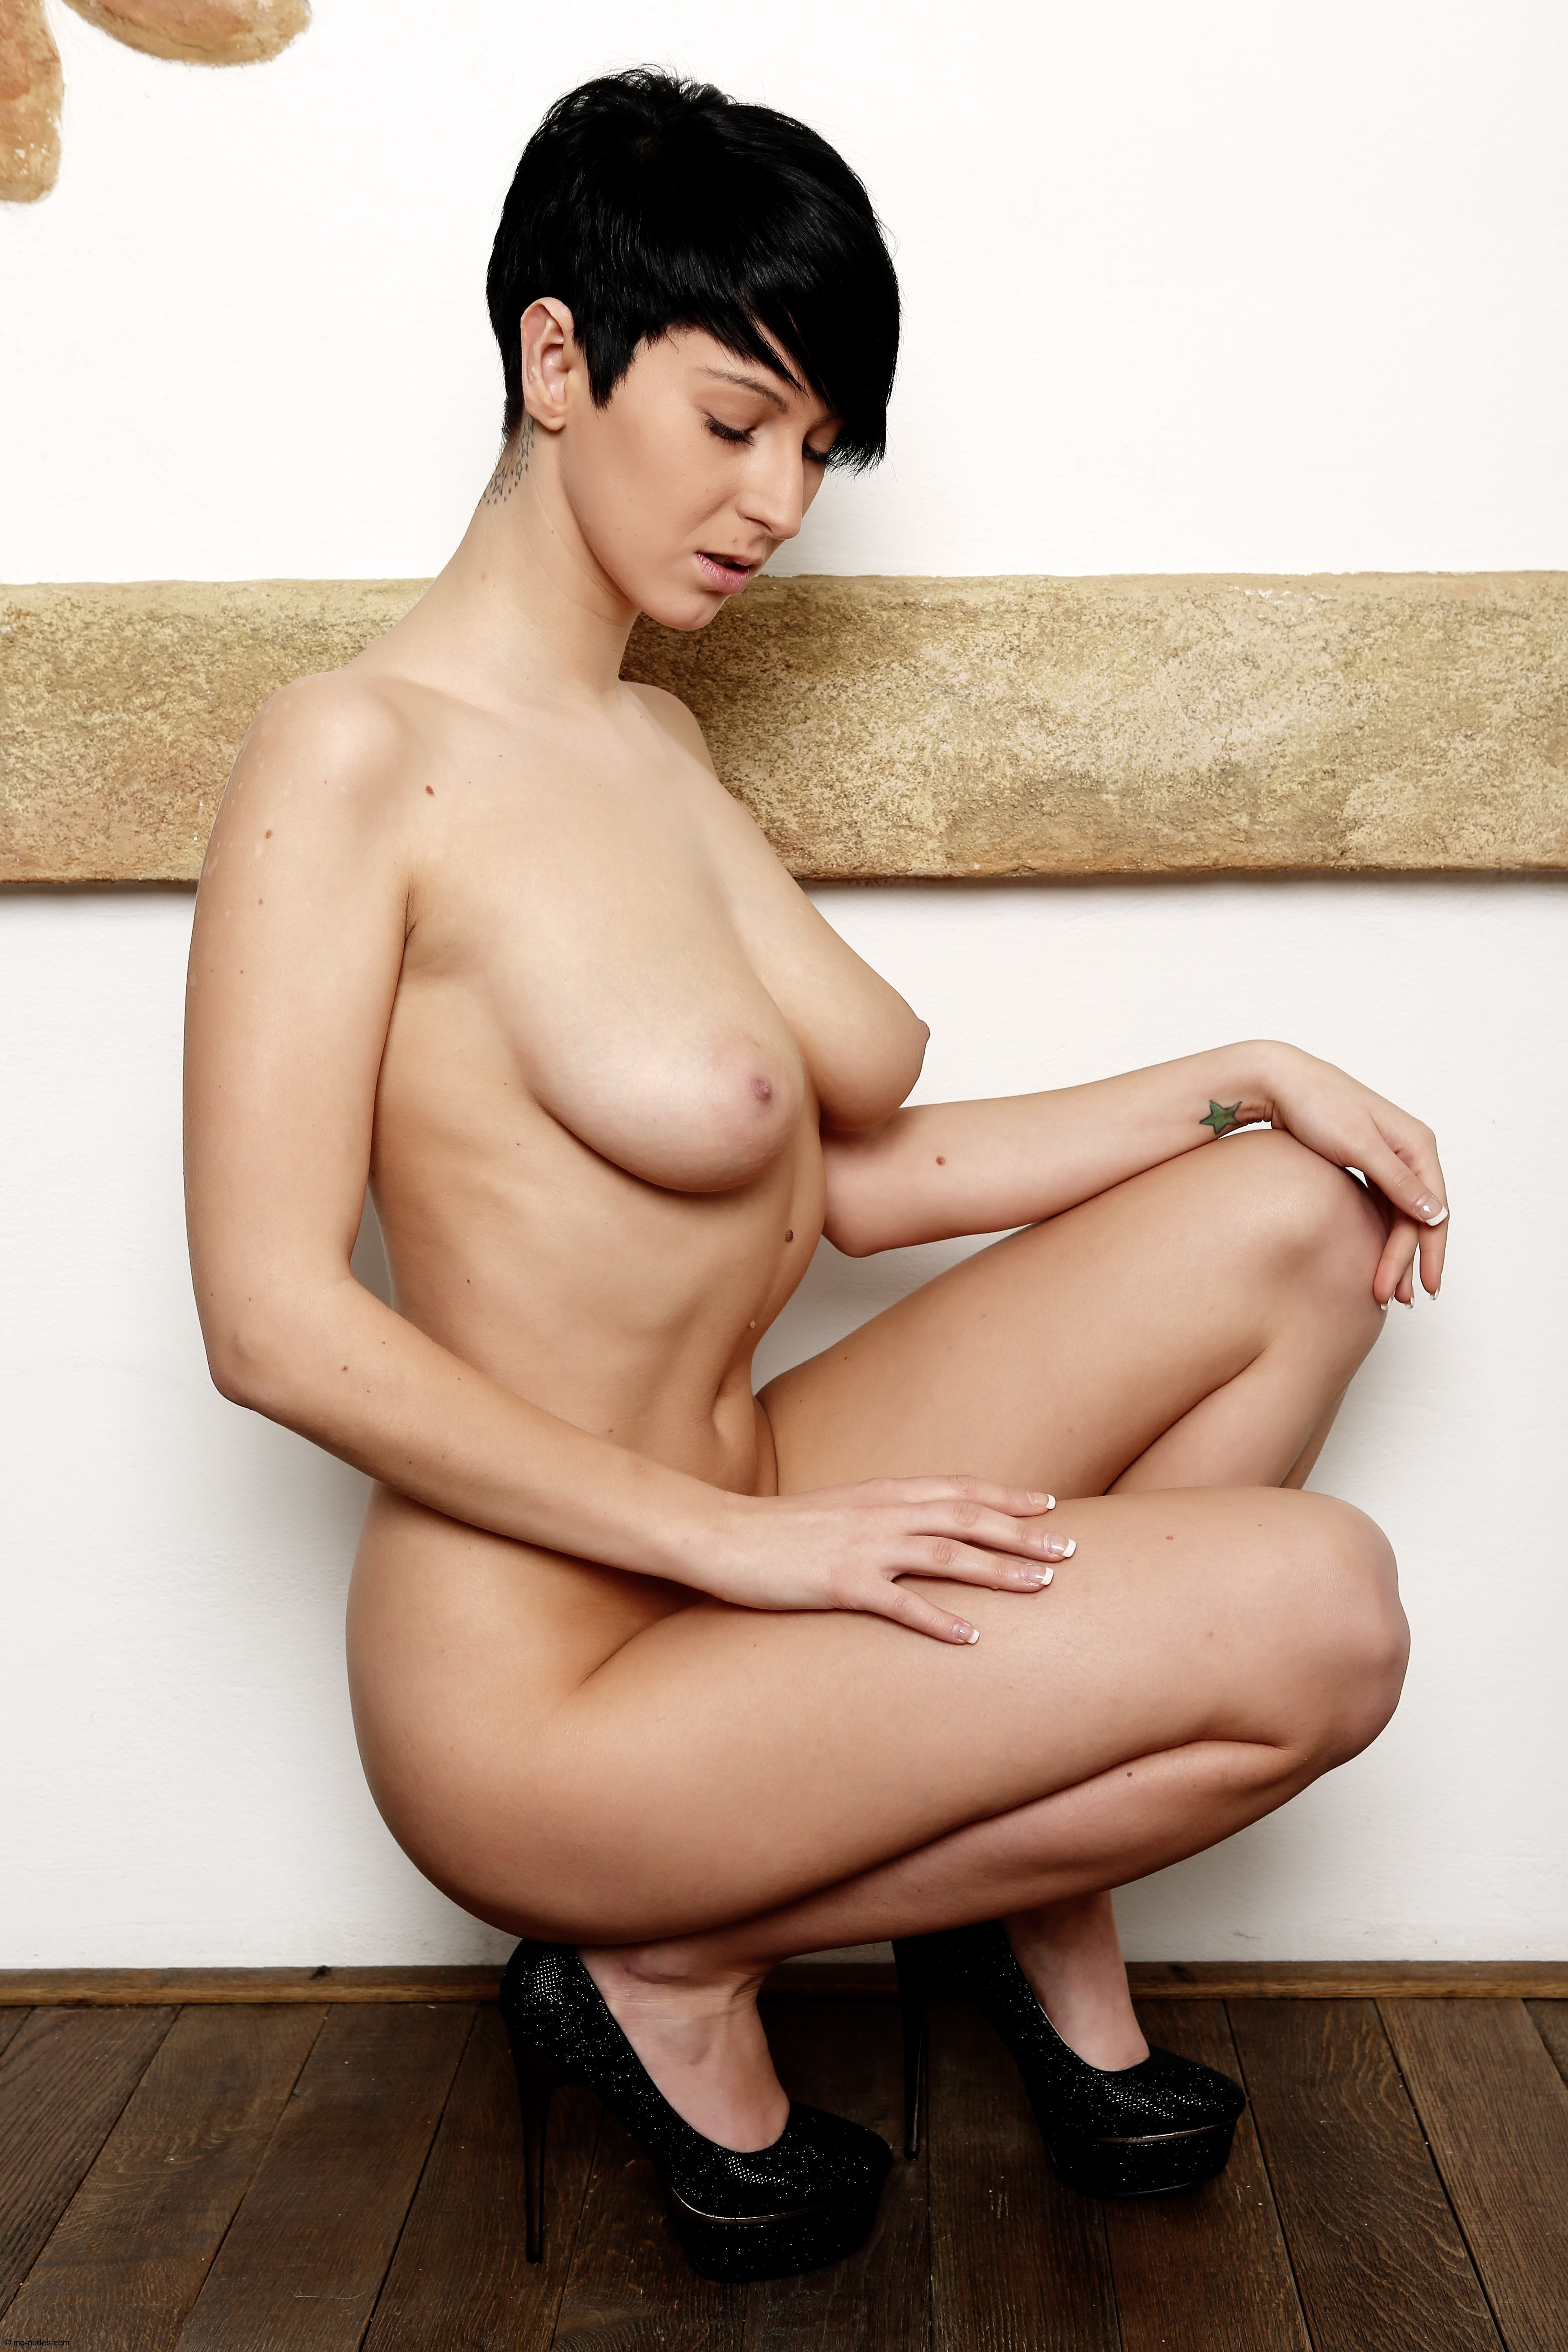 girl-nude-black-girls-with-short-hair-pic-stickam-gif-indian